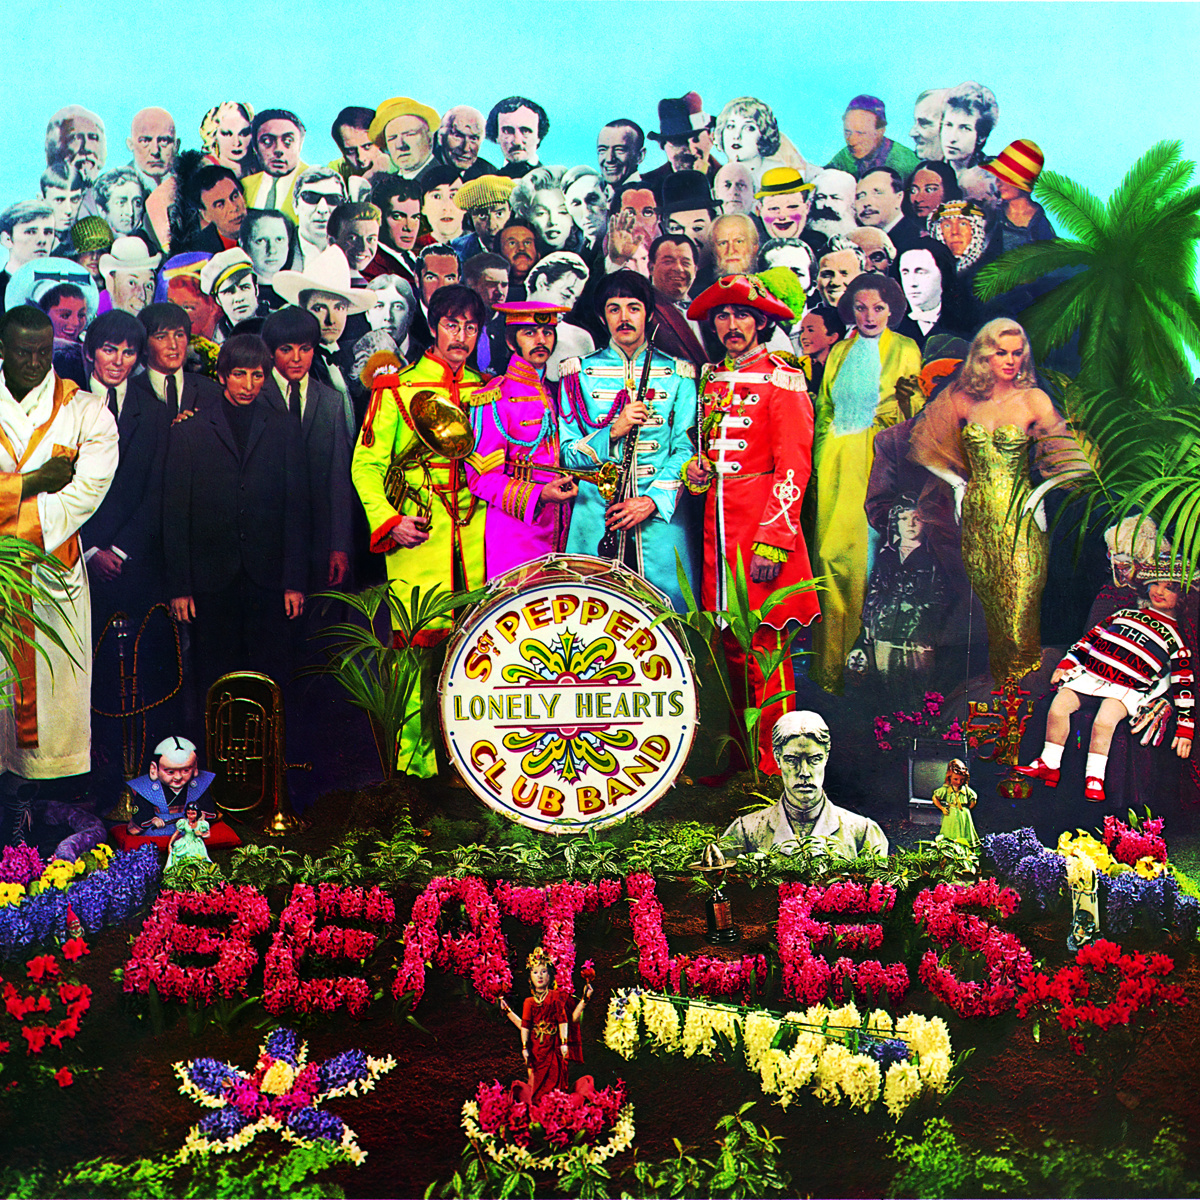 The_Beatles_Sgt_Peppers_lonely_hearts_club_band_hi_res